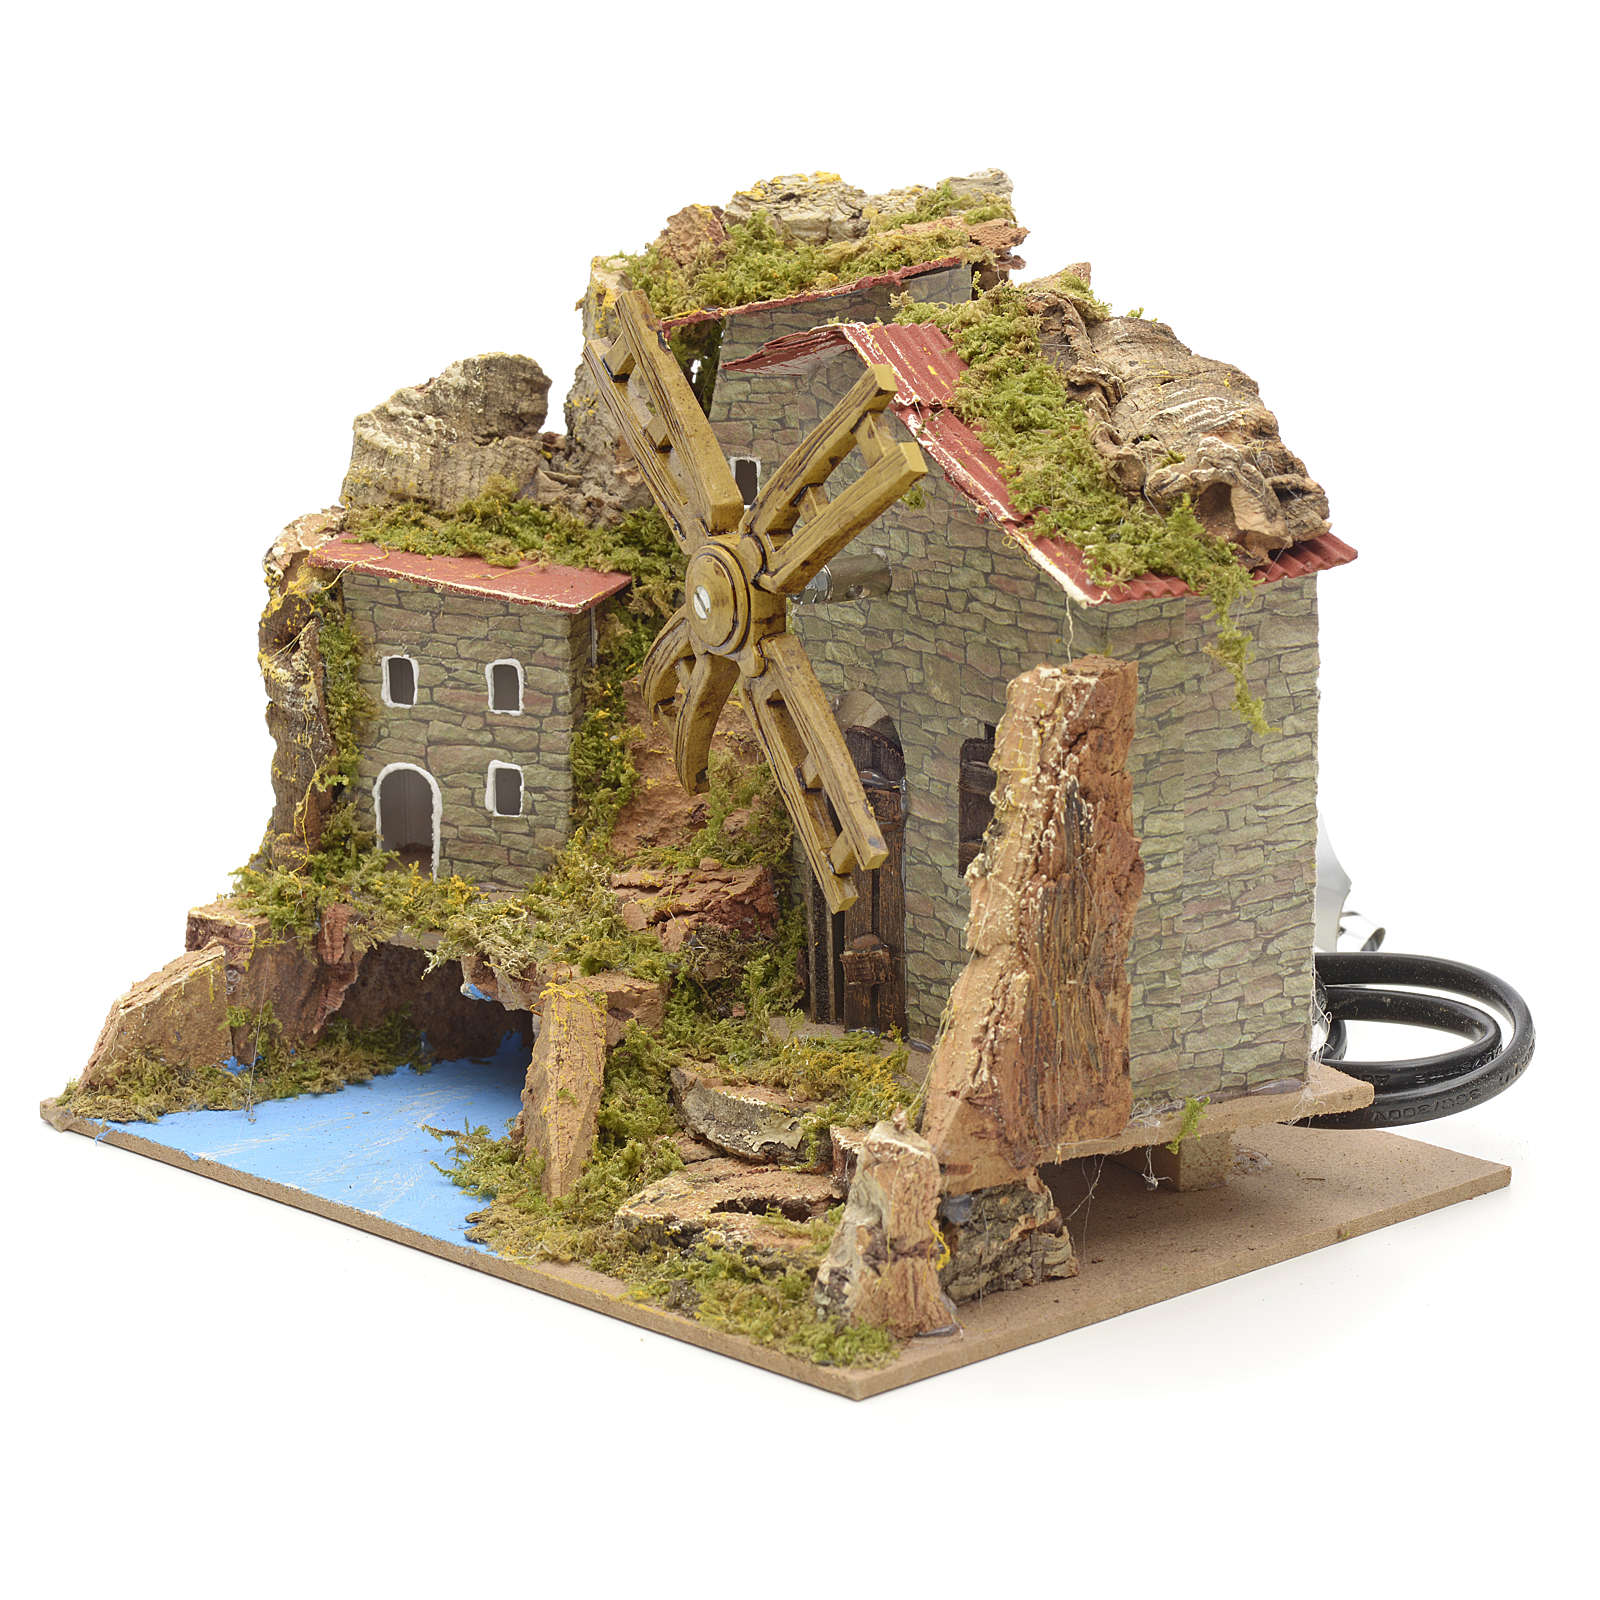 Wind mill for nativities with river and village 15x20x15cm 4